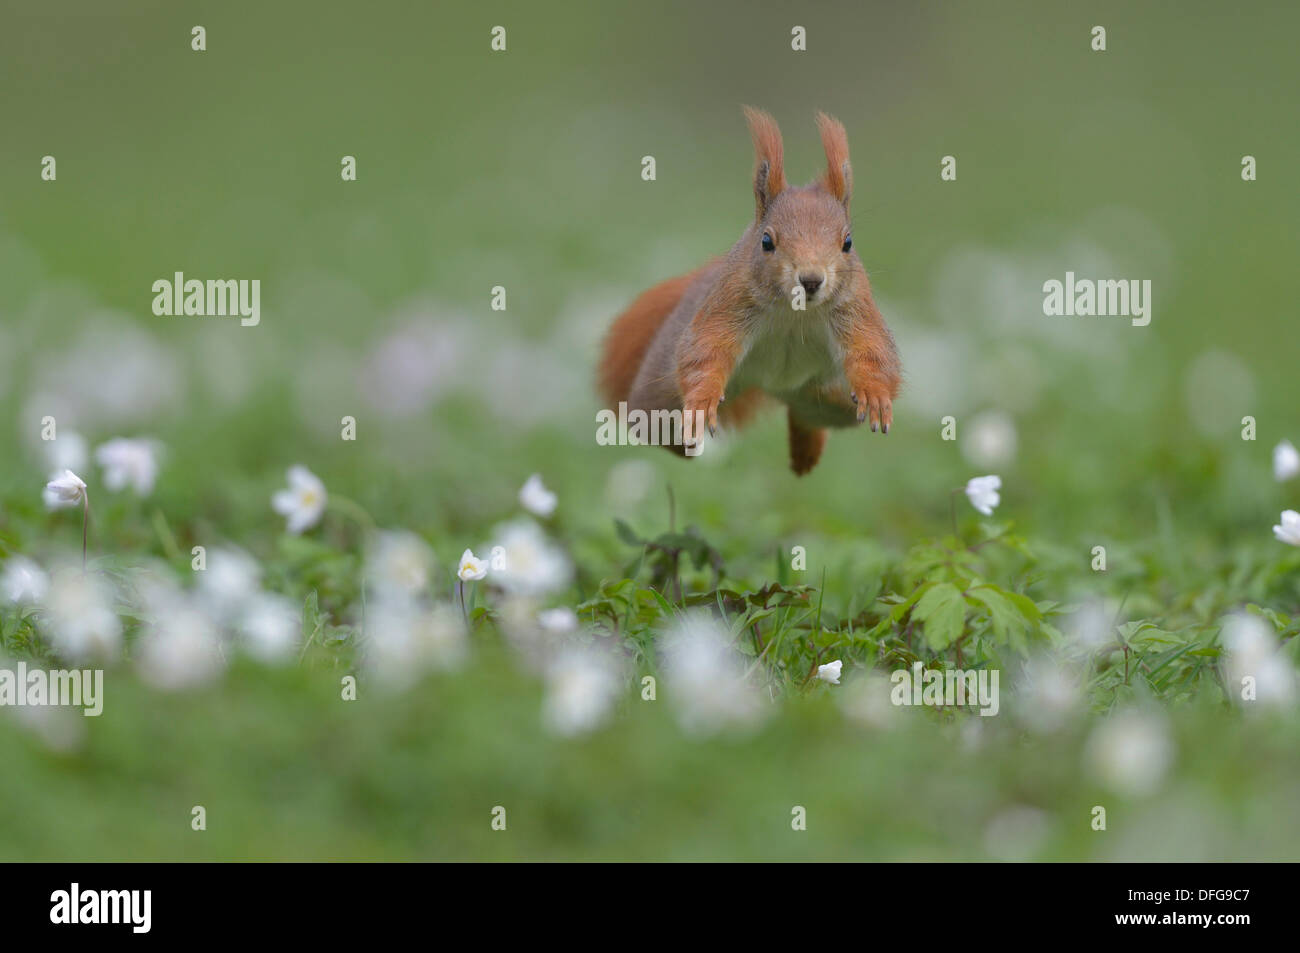 Red Squirrel or Eurasian Red Squirrel (Sciurus vulgaris), jumping, Saxony, Germany - Stock Image